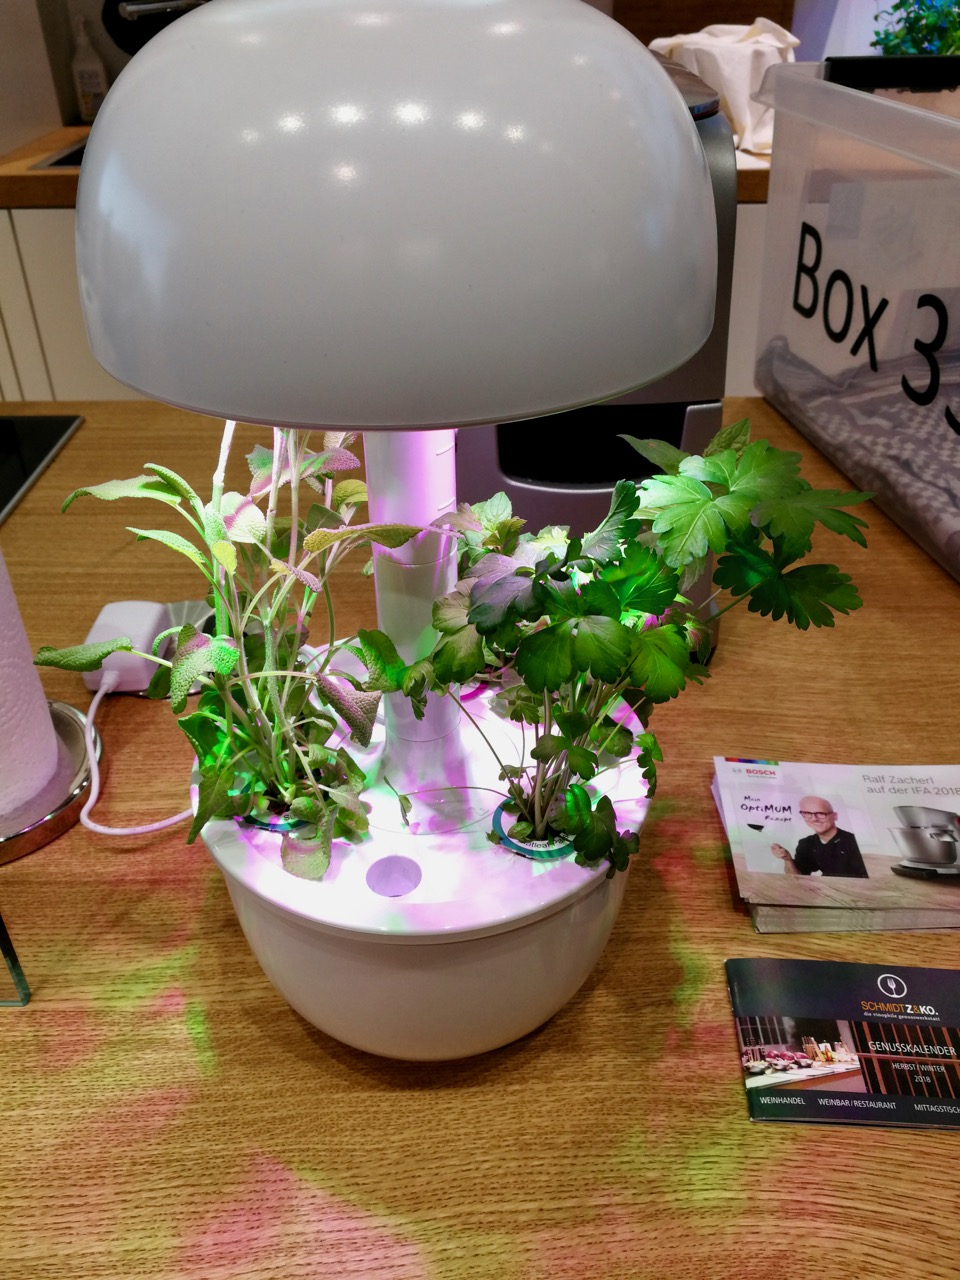 A Pod for your plant